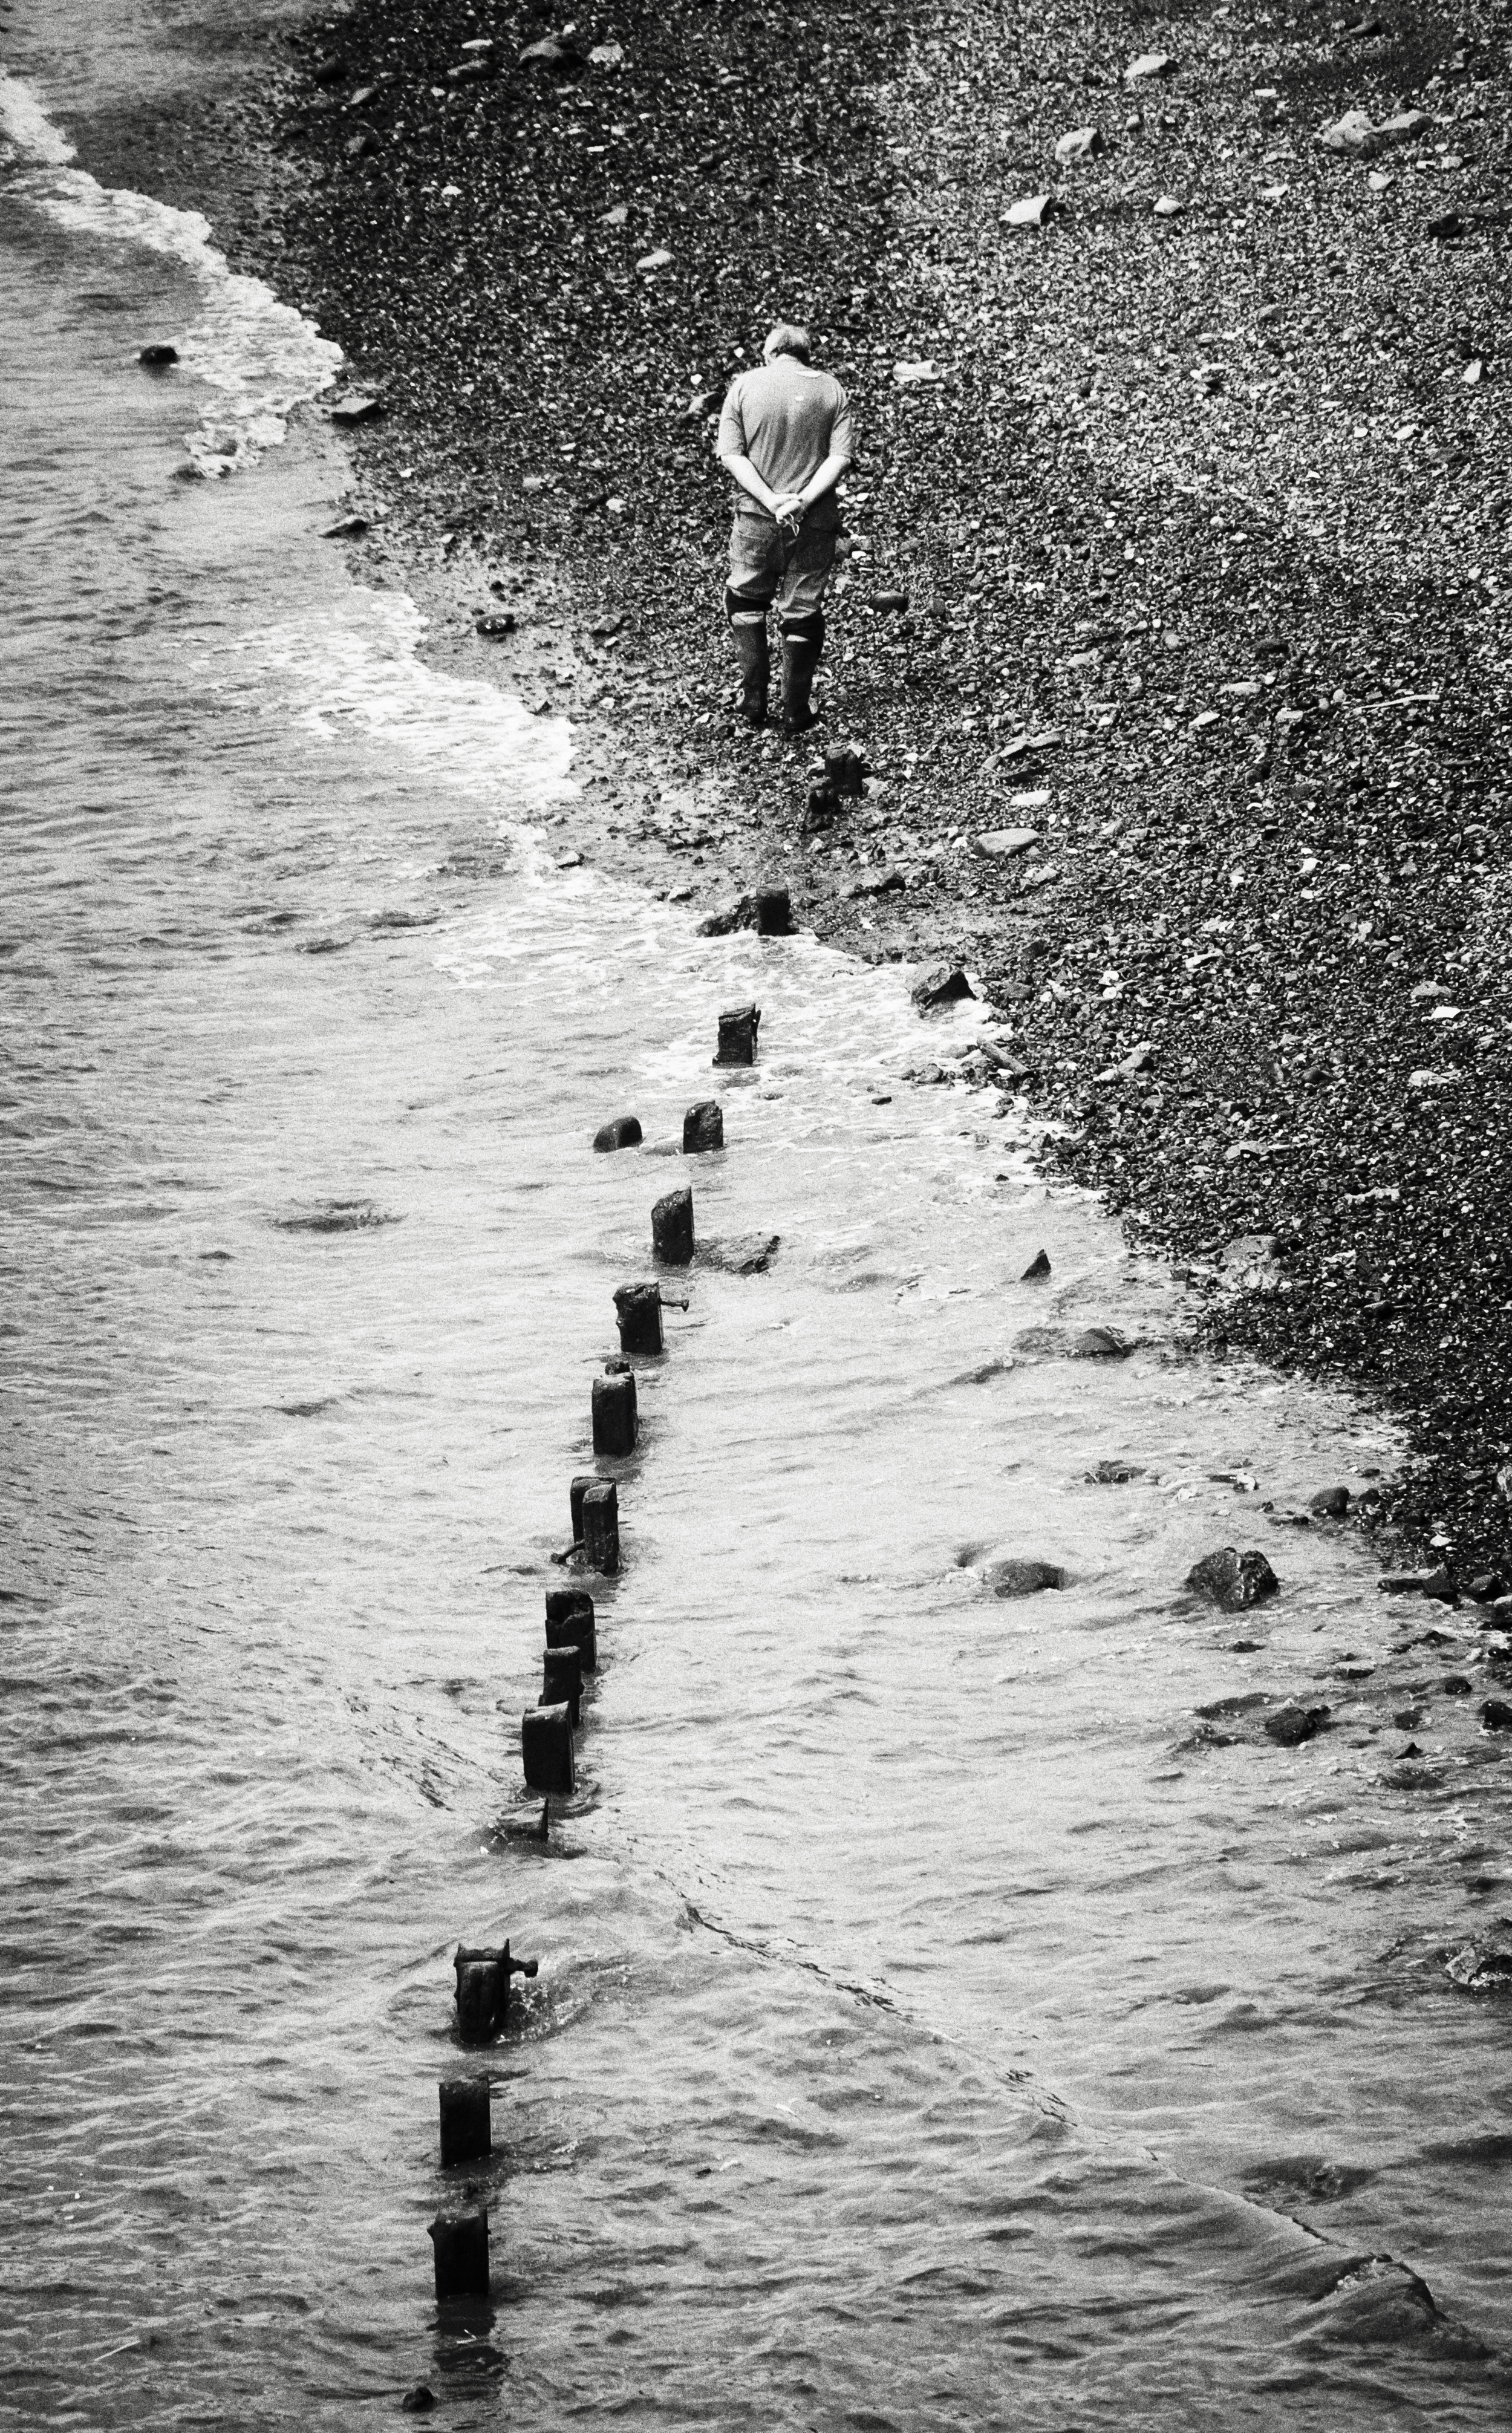 Mudlark   Walking the Thames at low tide, near the Tower of London